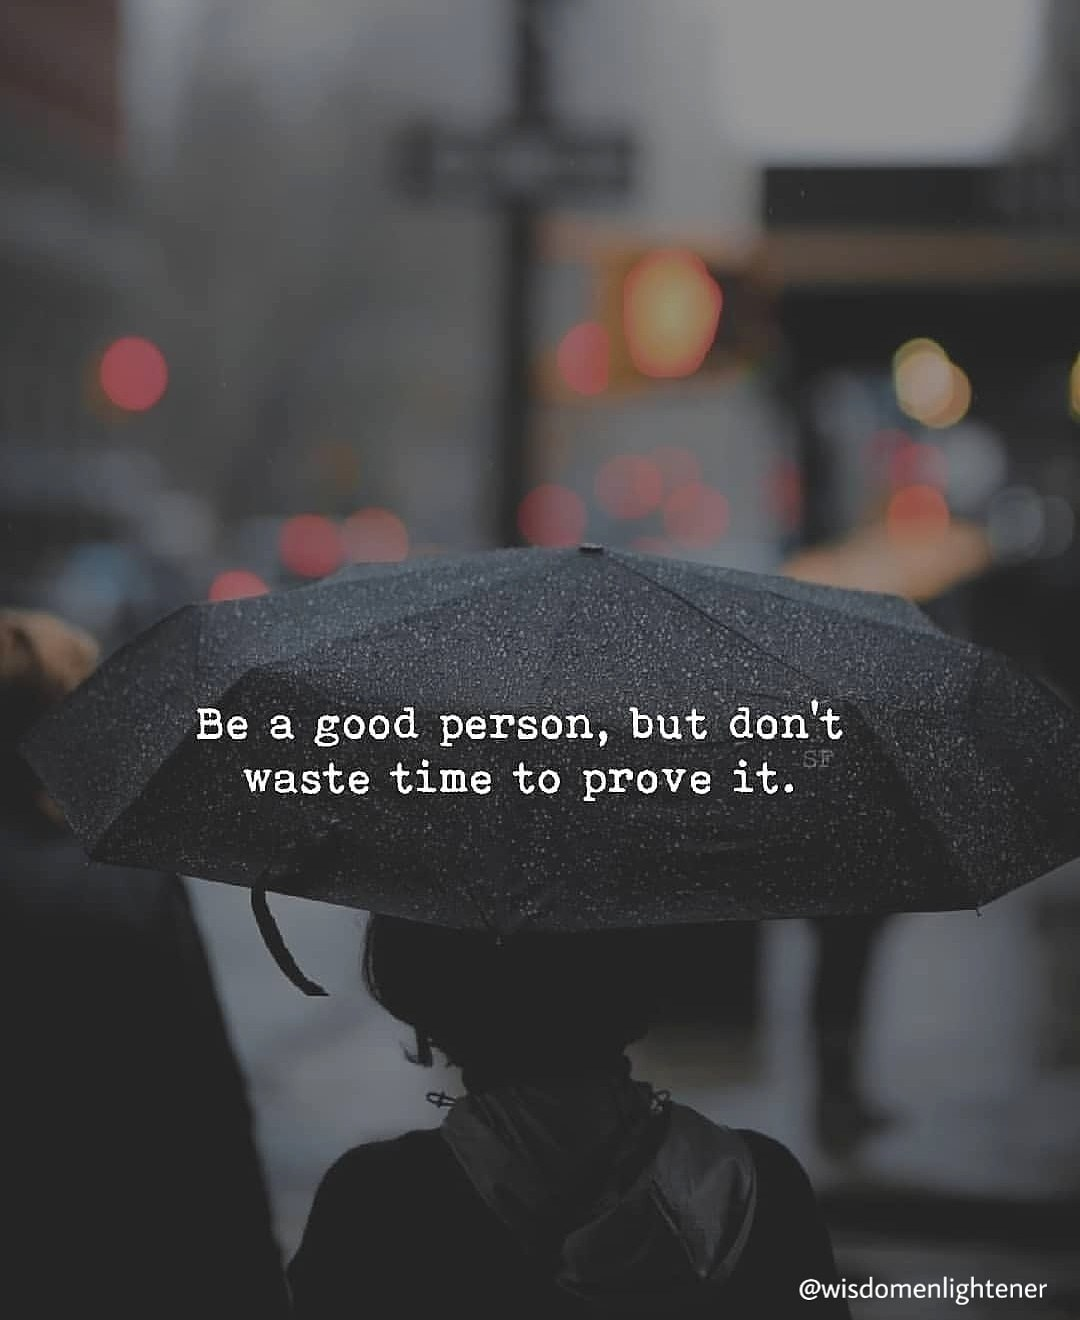 Be a good person, but don't wase time to prove it.